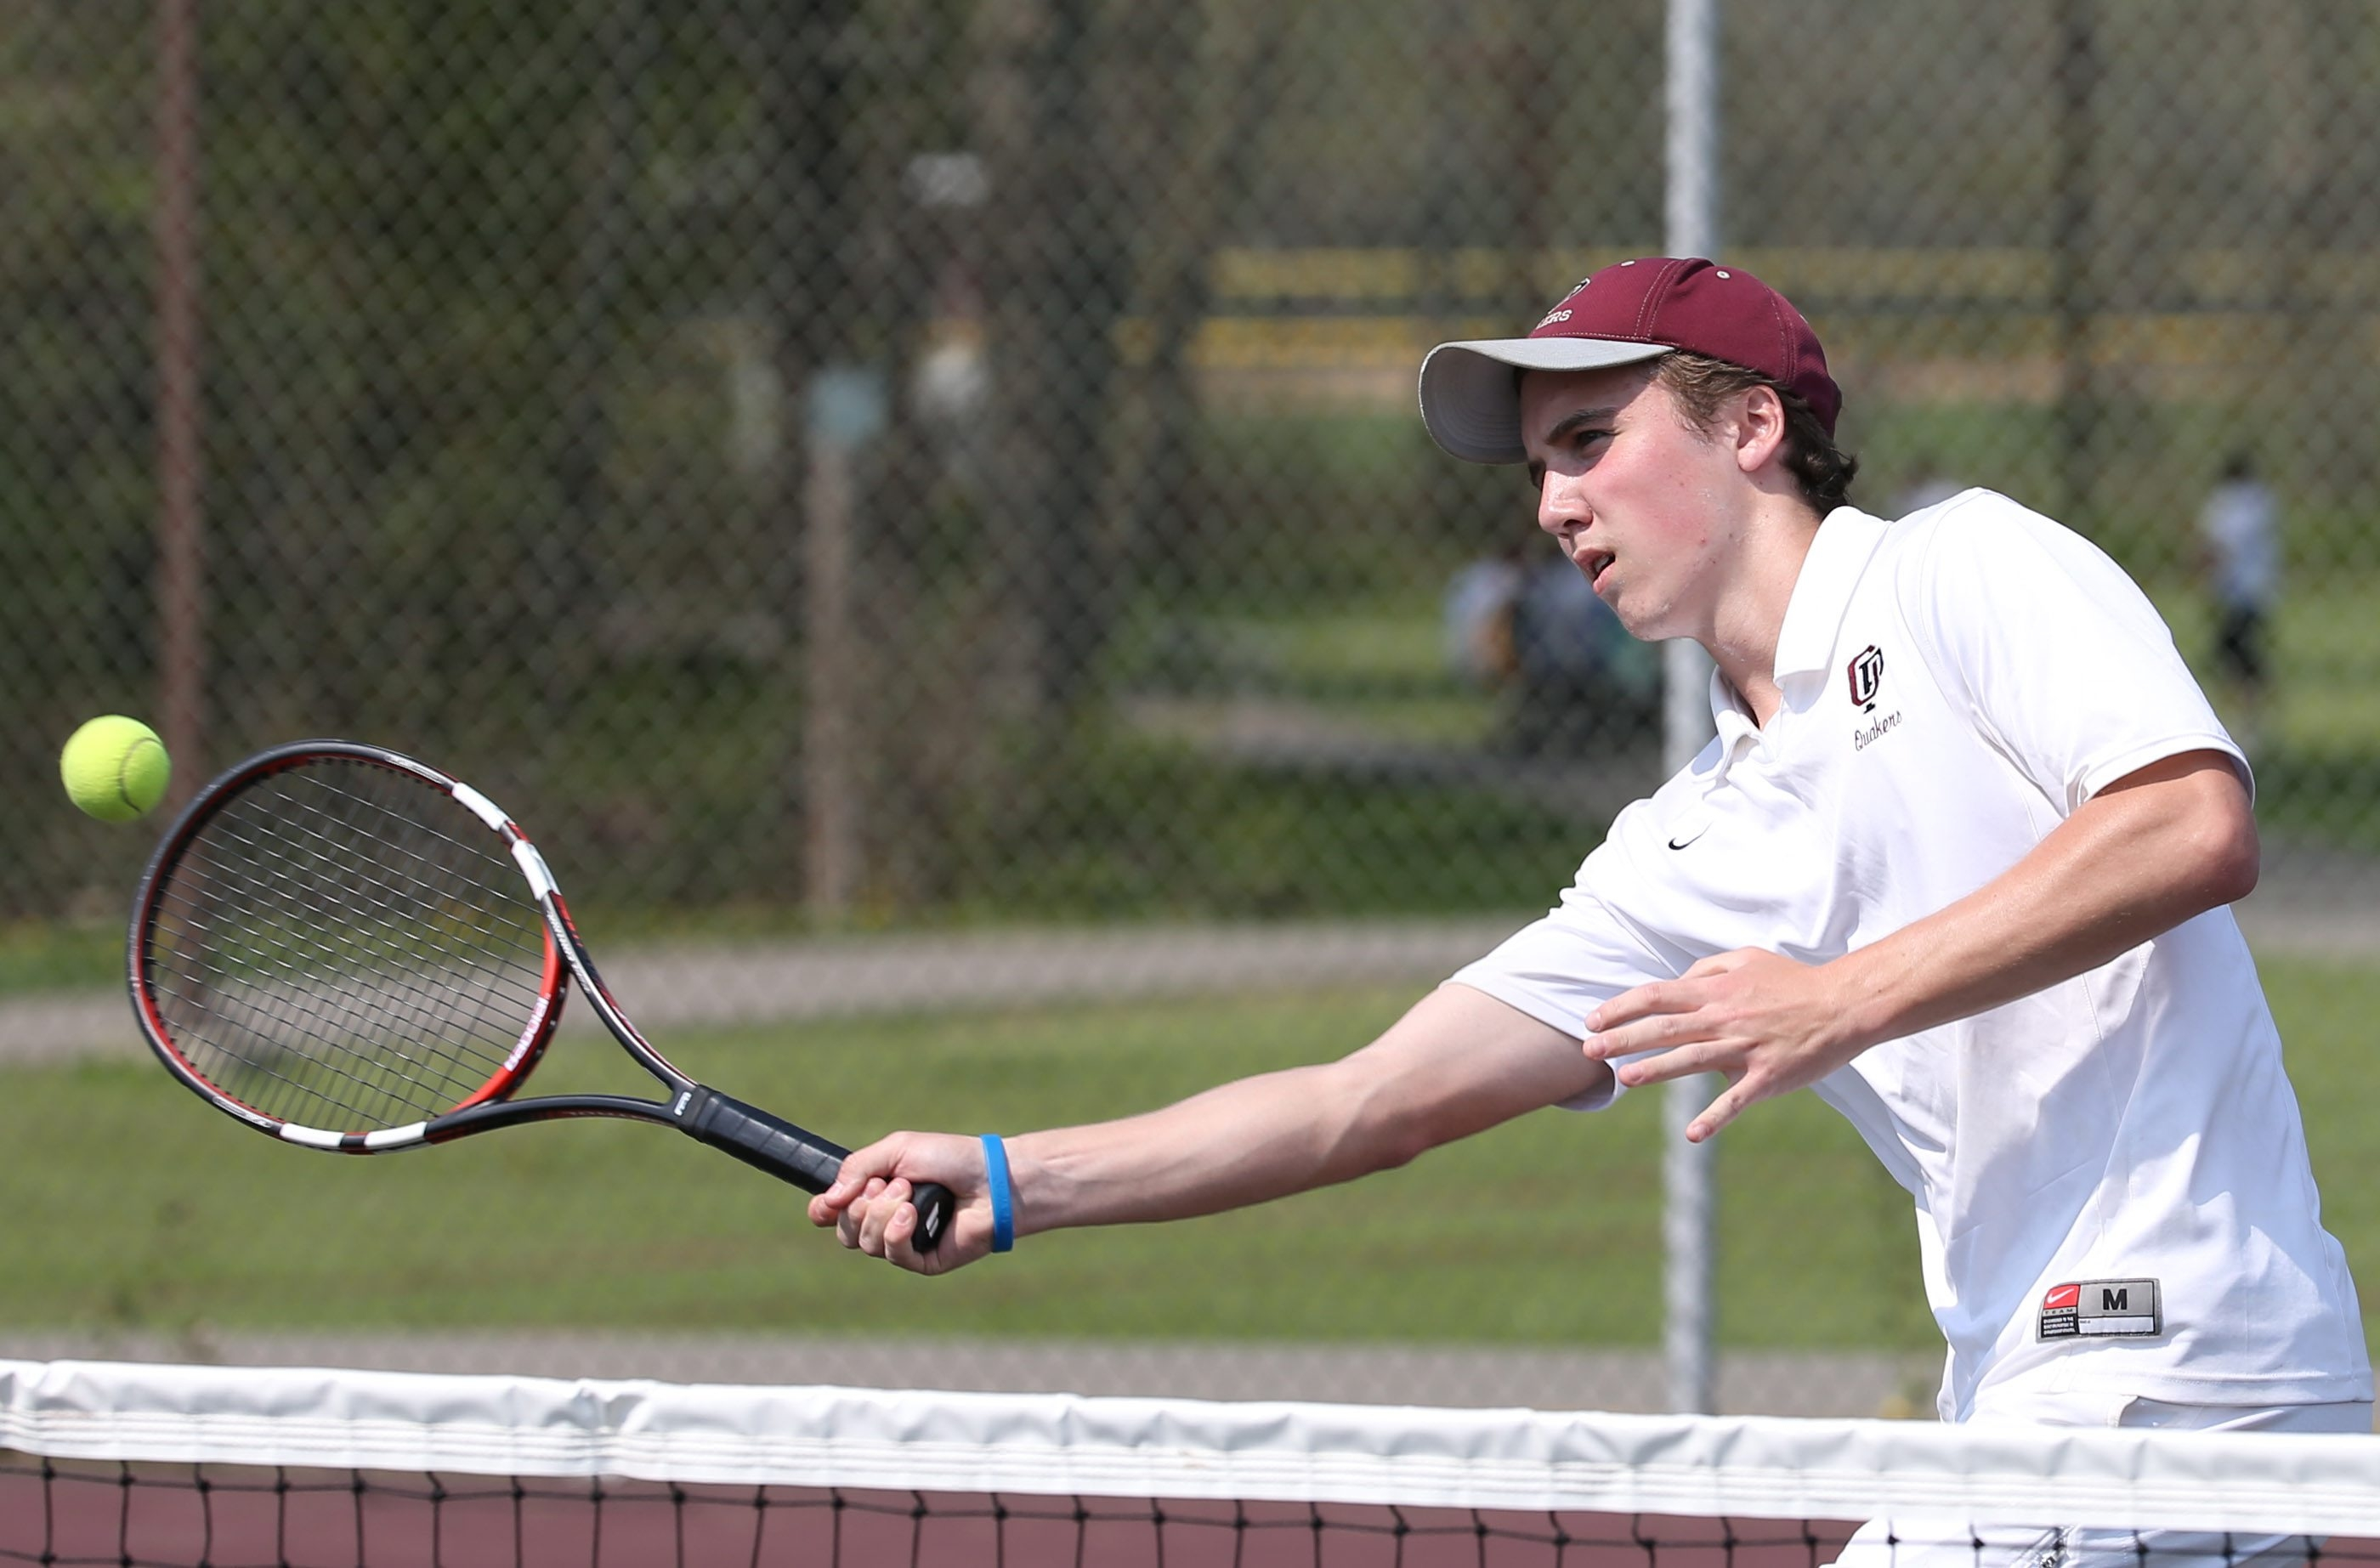 Jack Watson and his partner Noah Sayoc (not shown) won at second doubles, 6-4, 6-1, for Orchard Park during the Quakers' 5-0 triunph over Frontier on Friday.